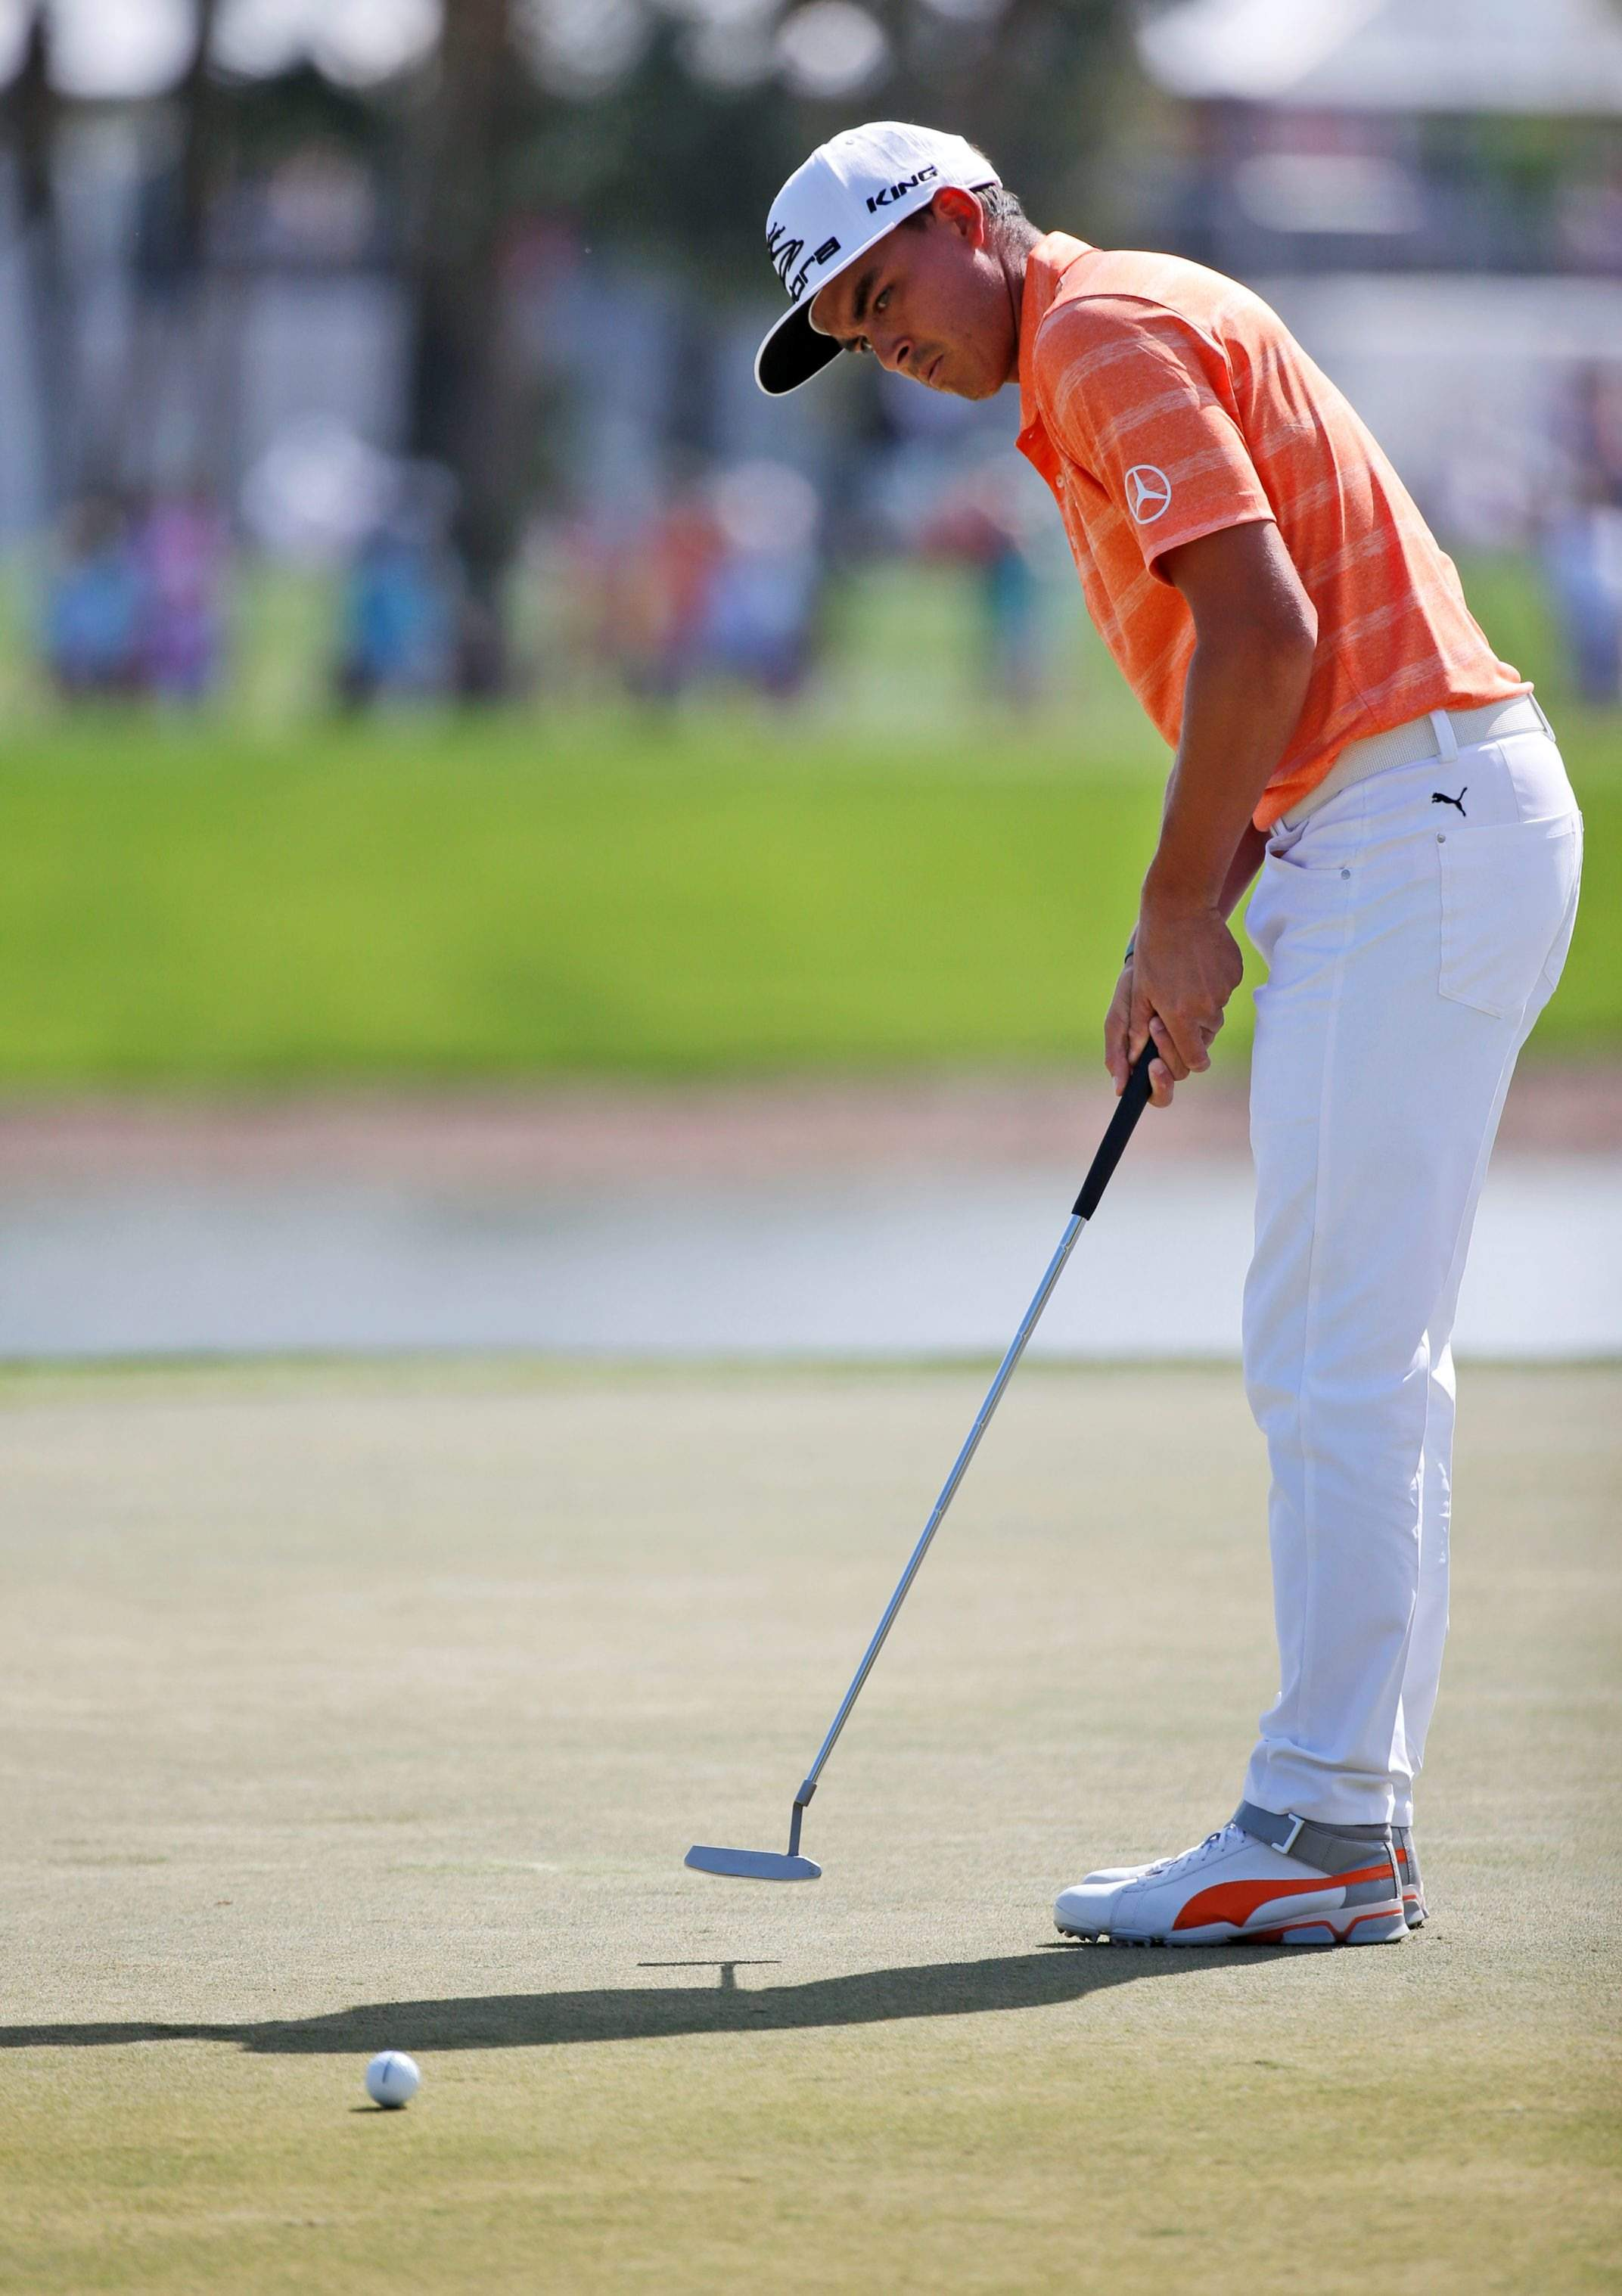 Rickie Fowler overcomes early mishaps to win Honda Classic